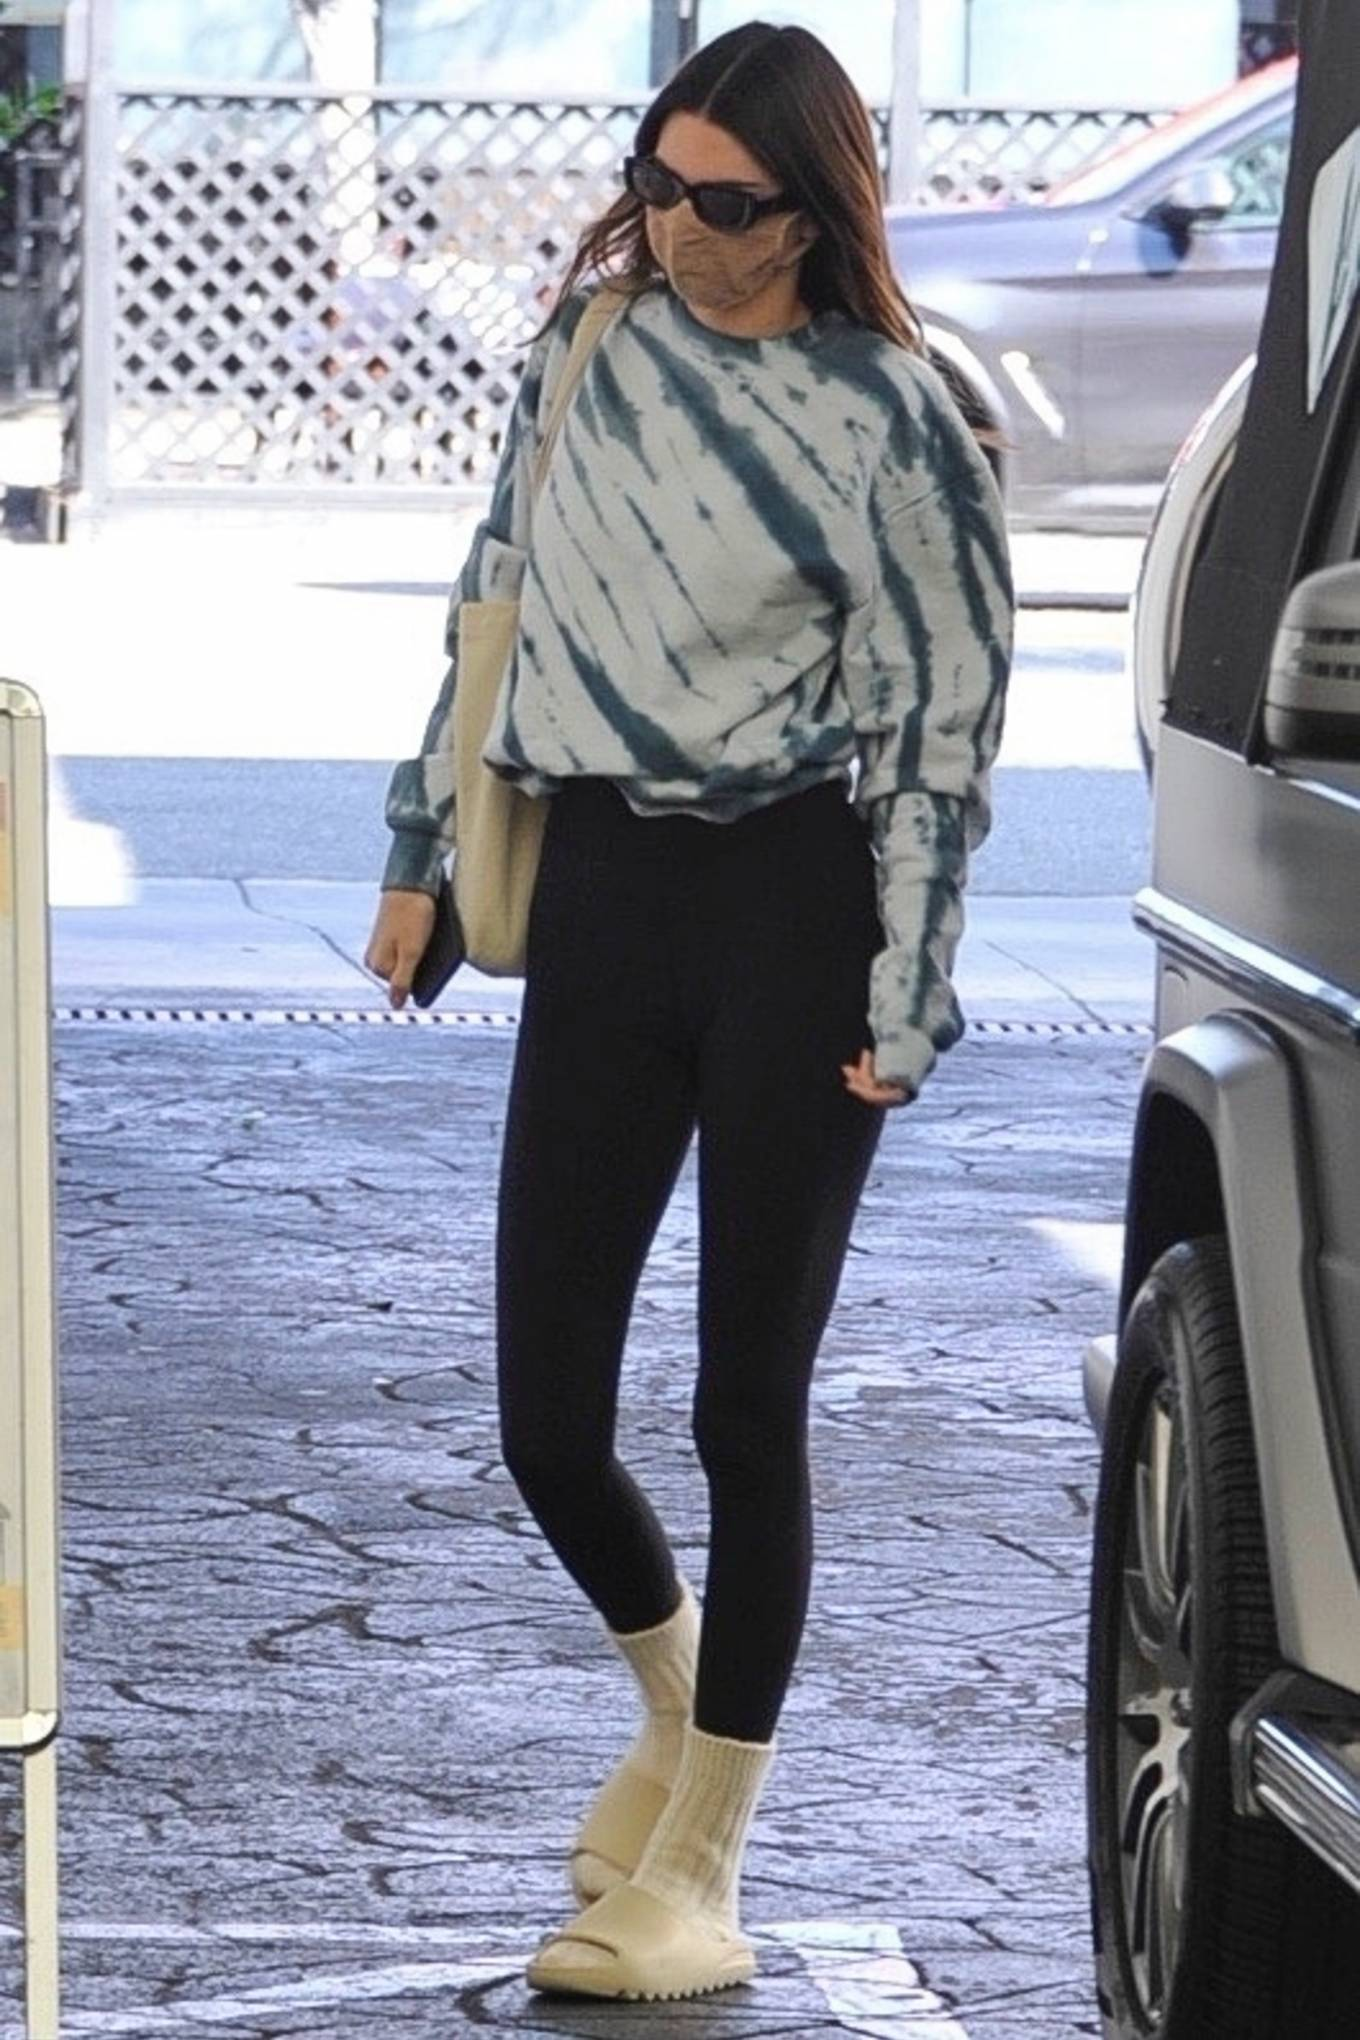 Kendall Jenner donning white(bone) Adidas x Yeezy slippers with chunky sole